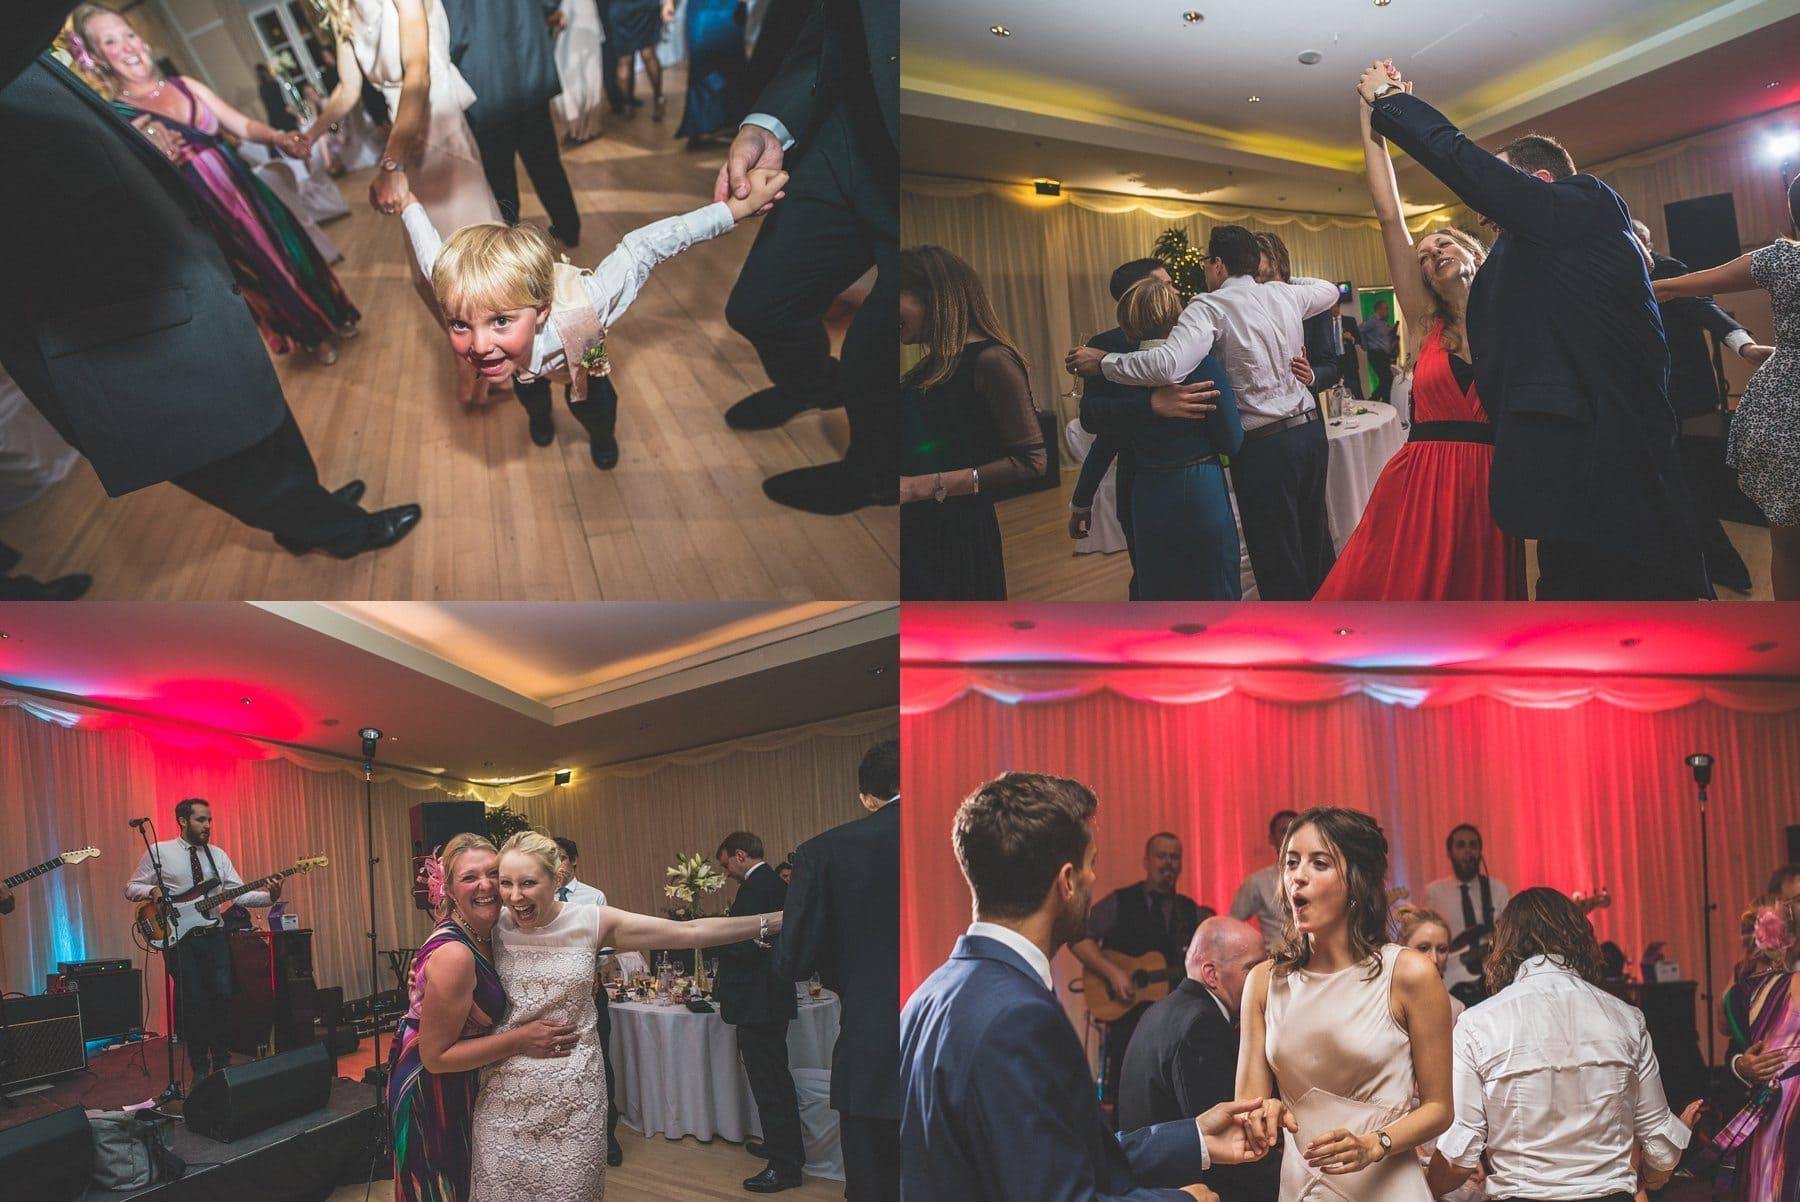 Wedding Music Band Prices 57 Beautiful Wedding guests dancing wildly